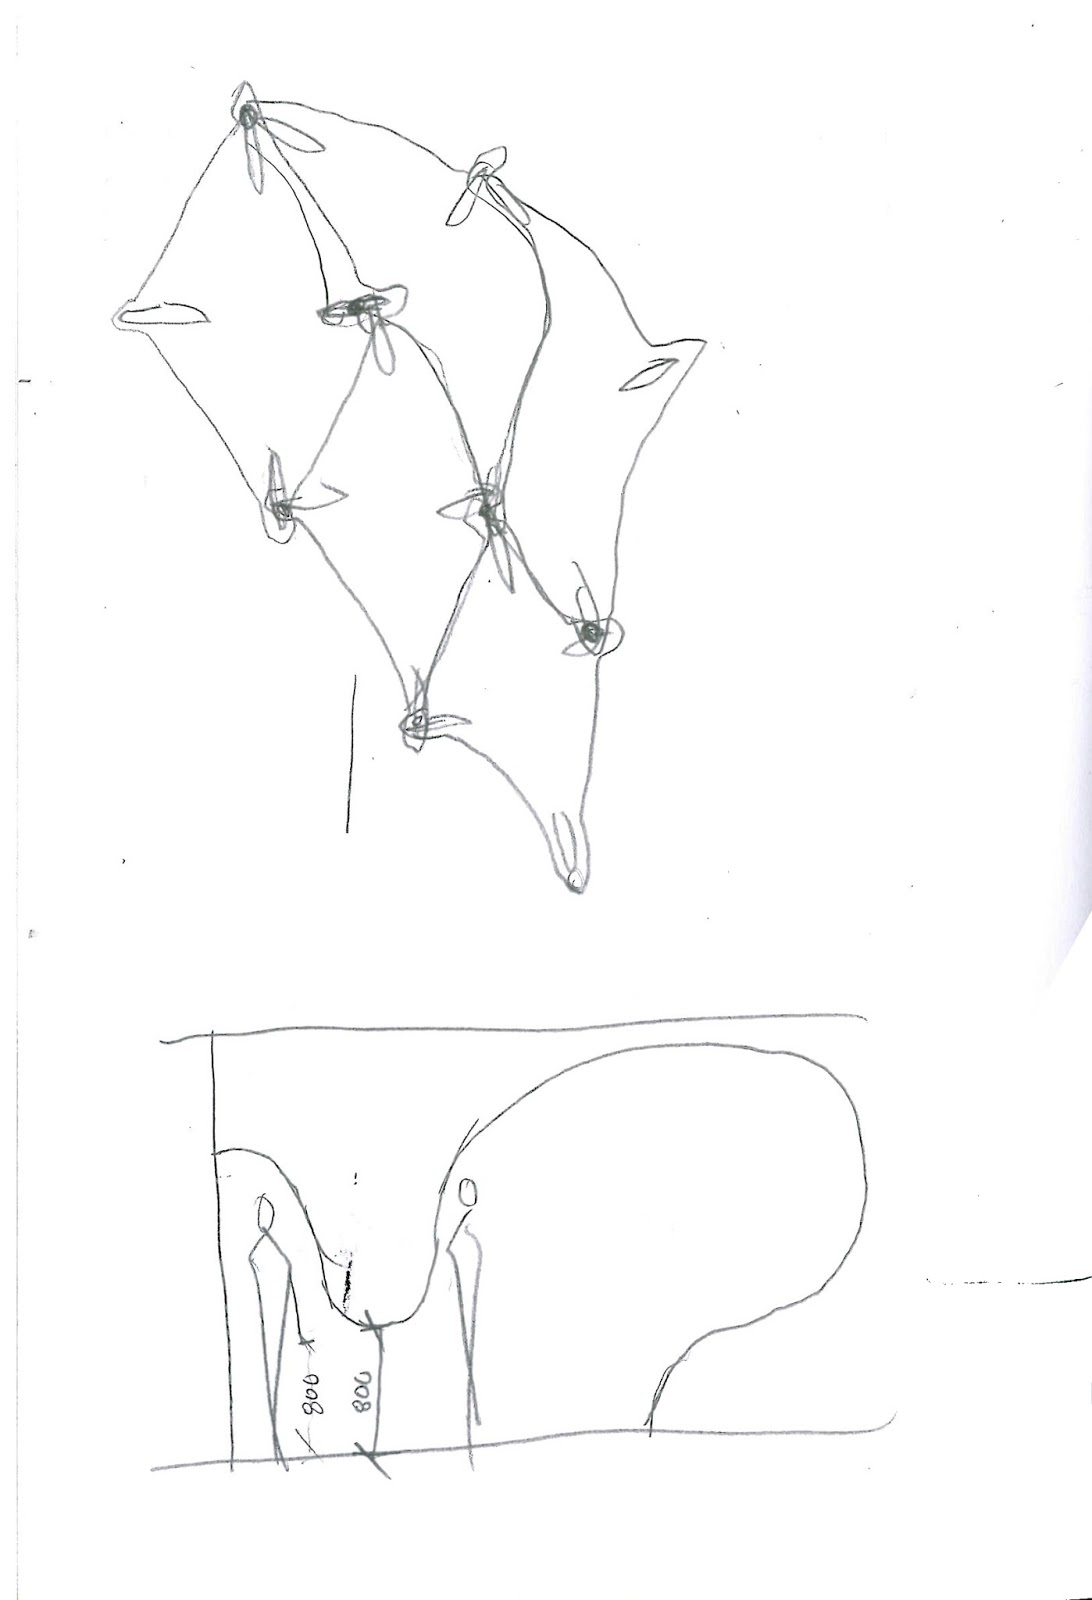 Additional initial sketches of flux